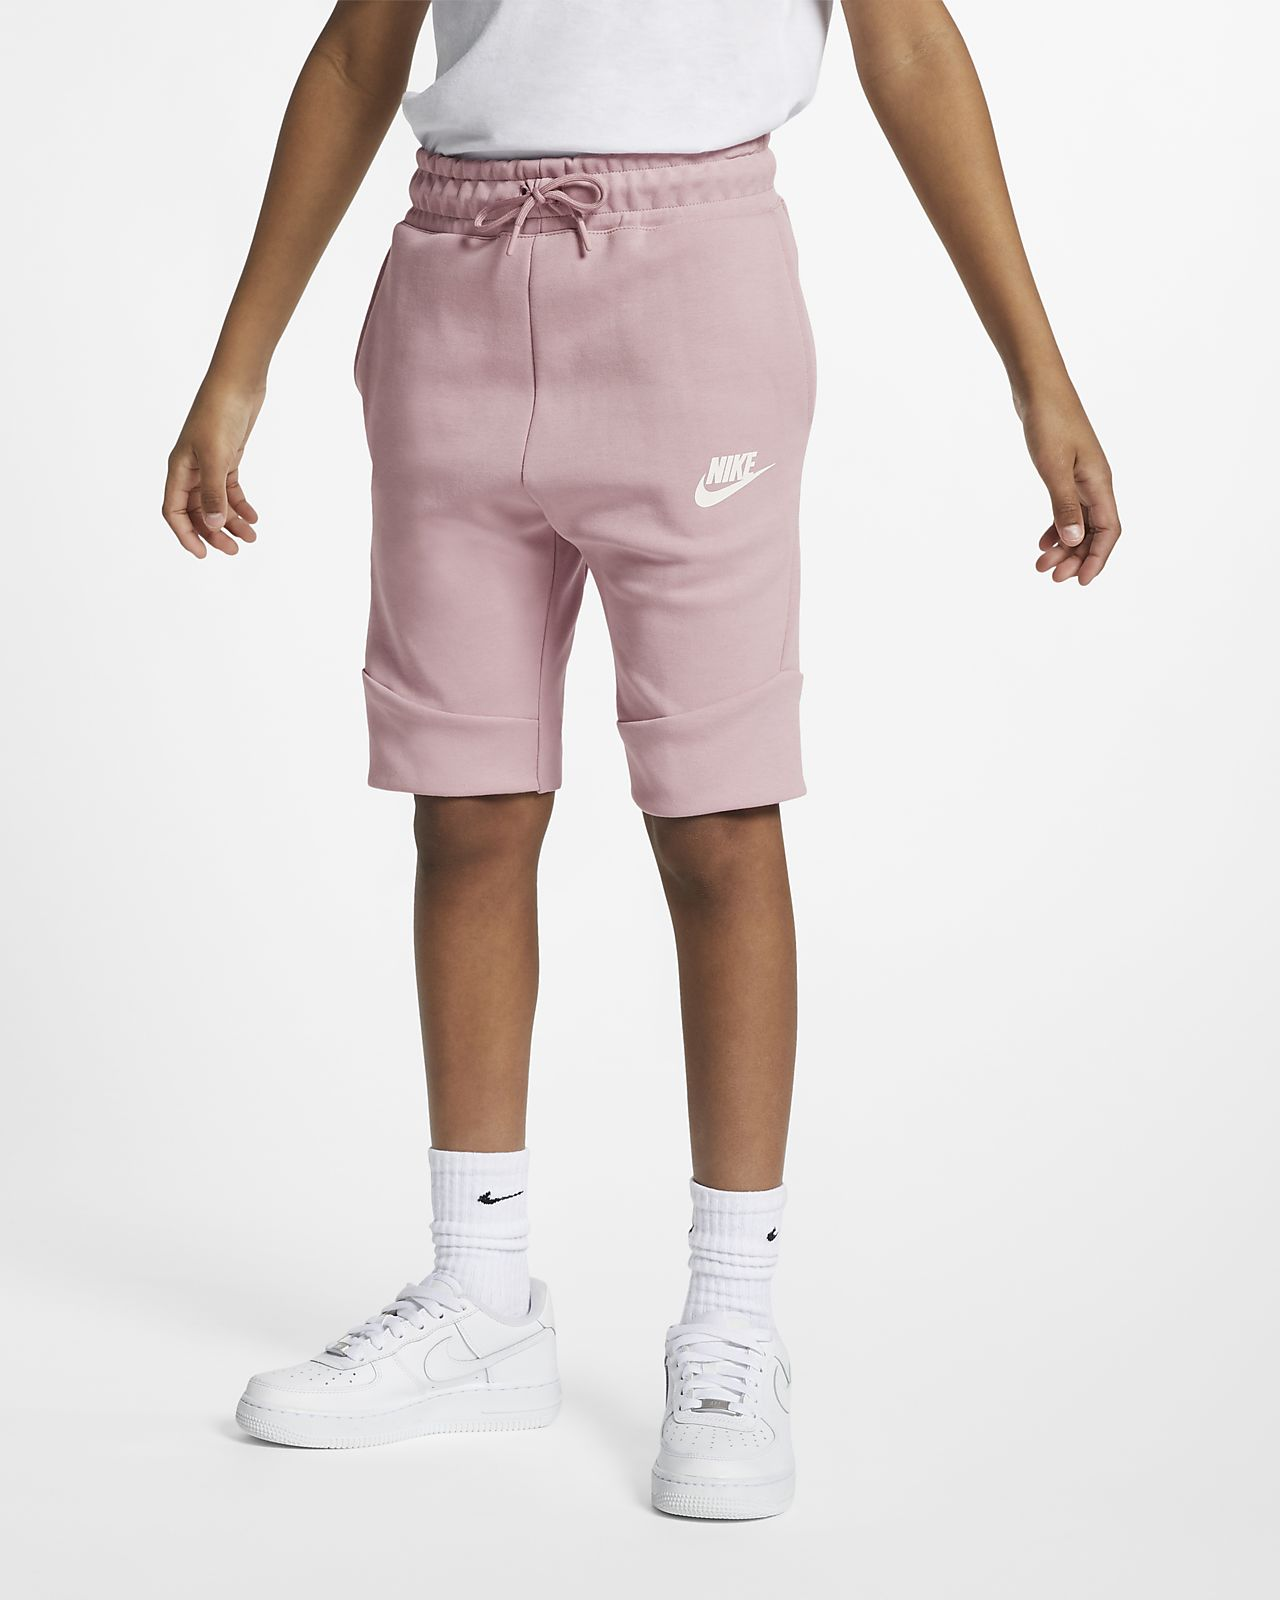 Shorts Nike Sportswear Tech Fleece för ungdom